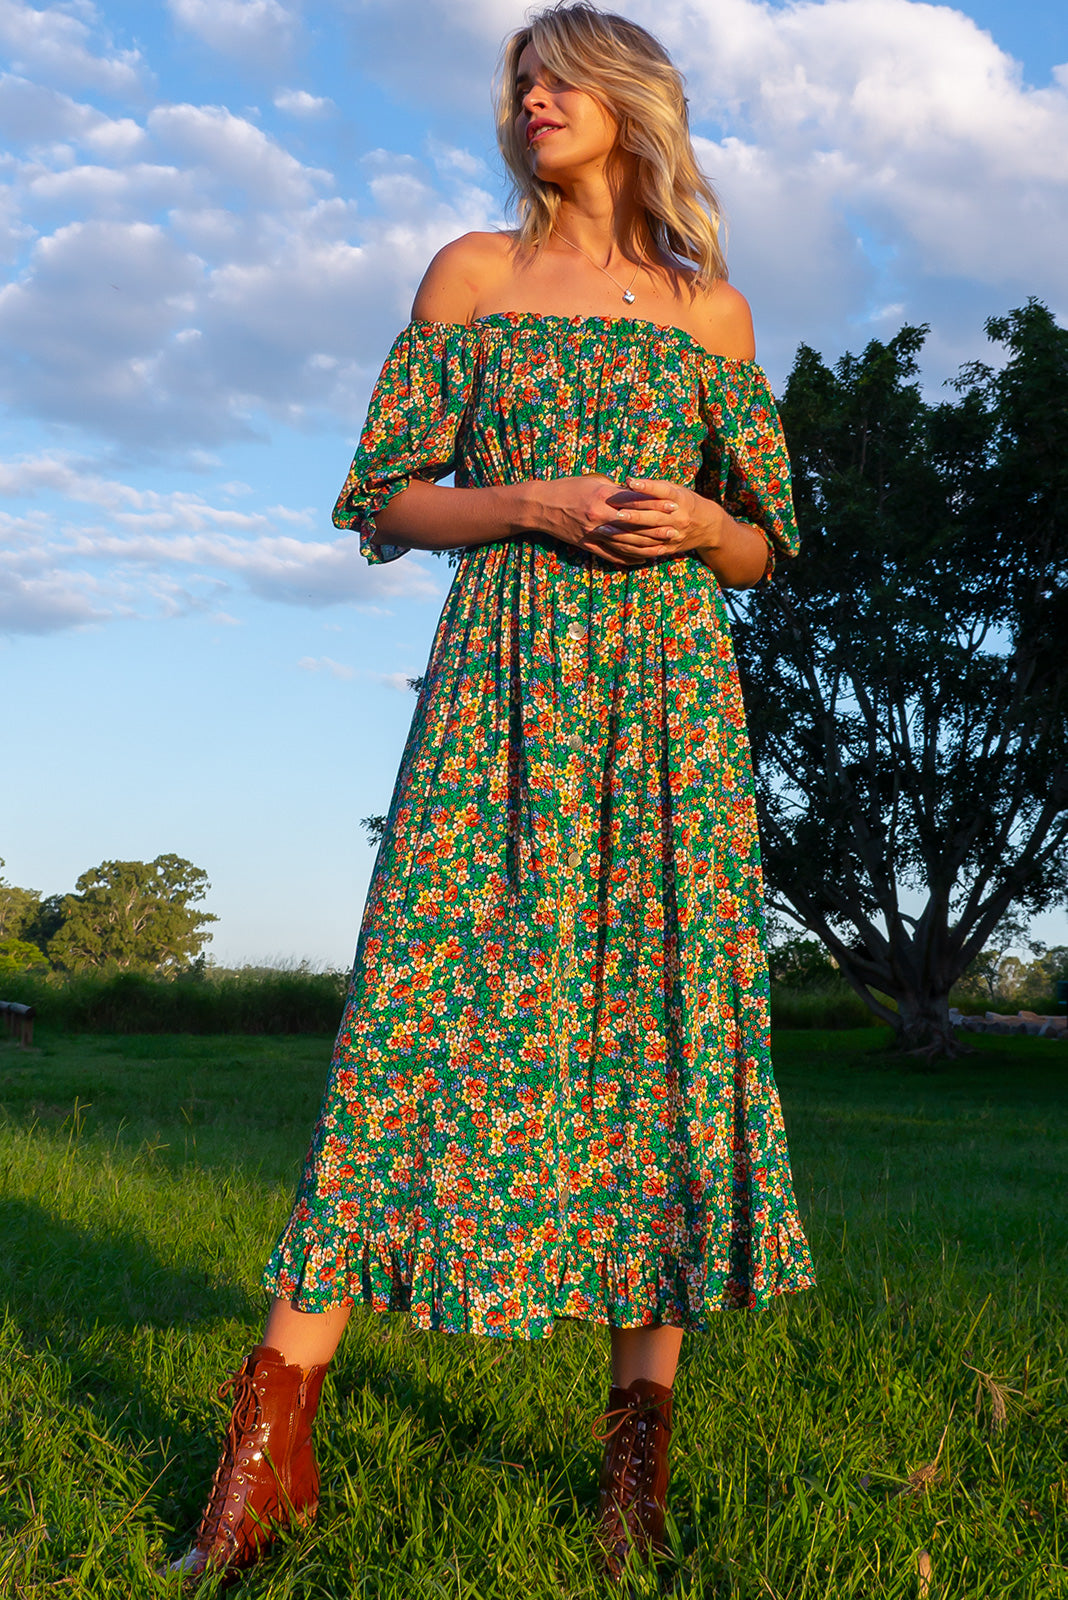 The Cecelia Green Leaves Maxi Dress can be worn on or off the shoulder of milkmaid style with puff sleeves and bust featuring ruched chest, elasticated under bust, decorative buttons on front of skirt, side pockets and the fabric is woven 100% rayon in emerald green base with retro multicoloured floral print.